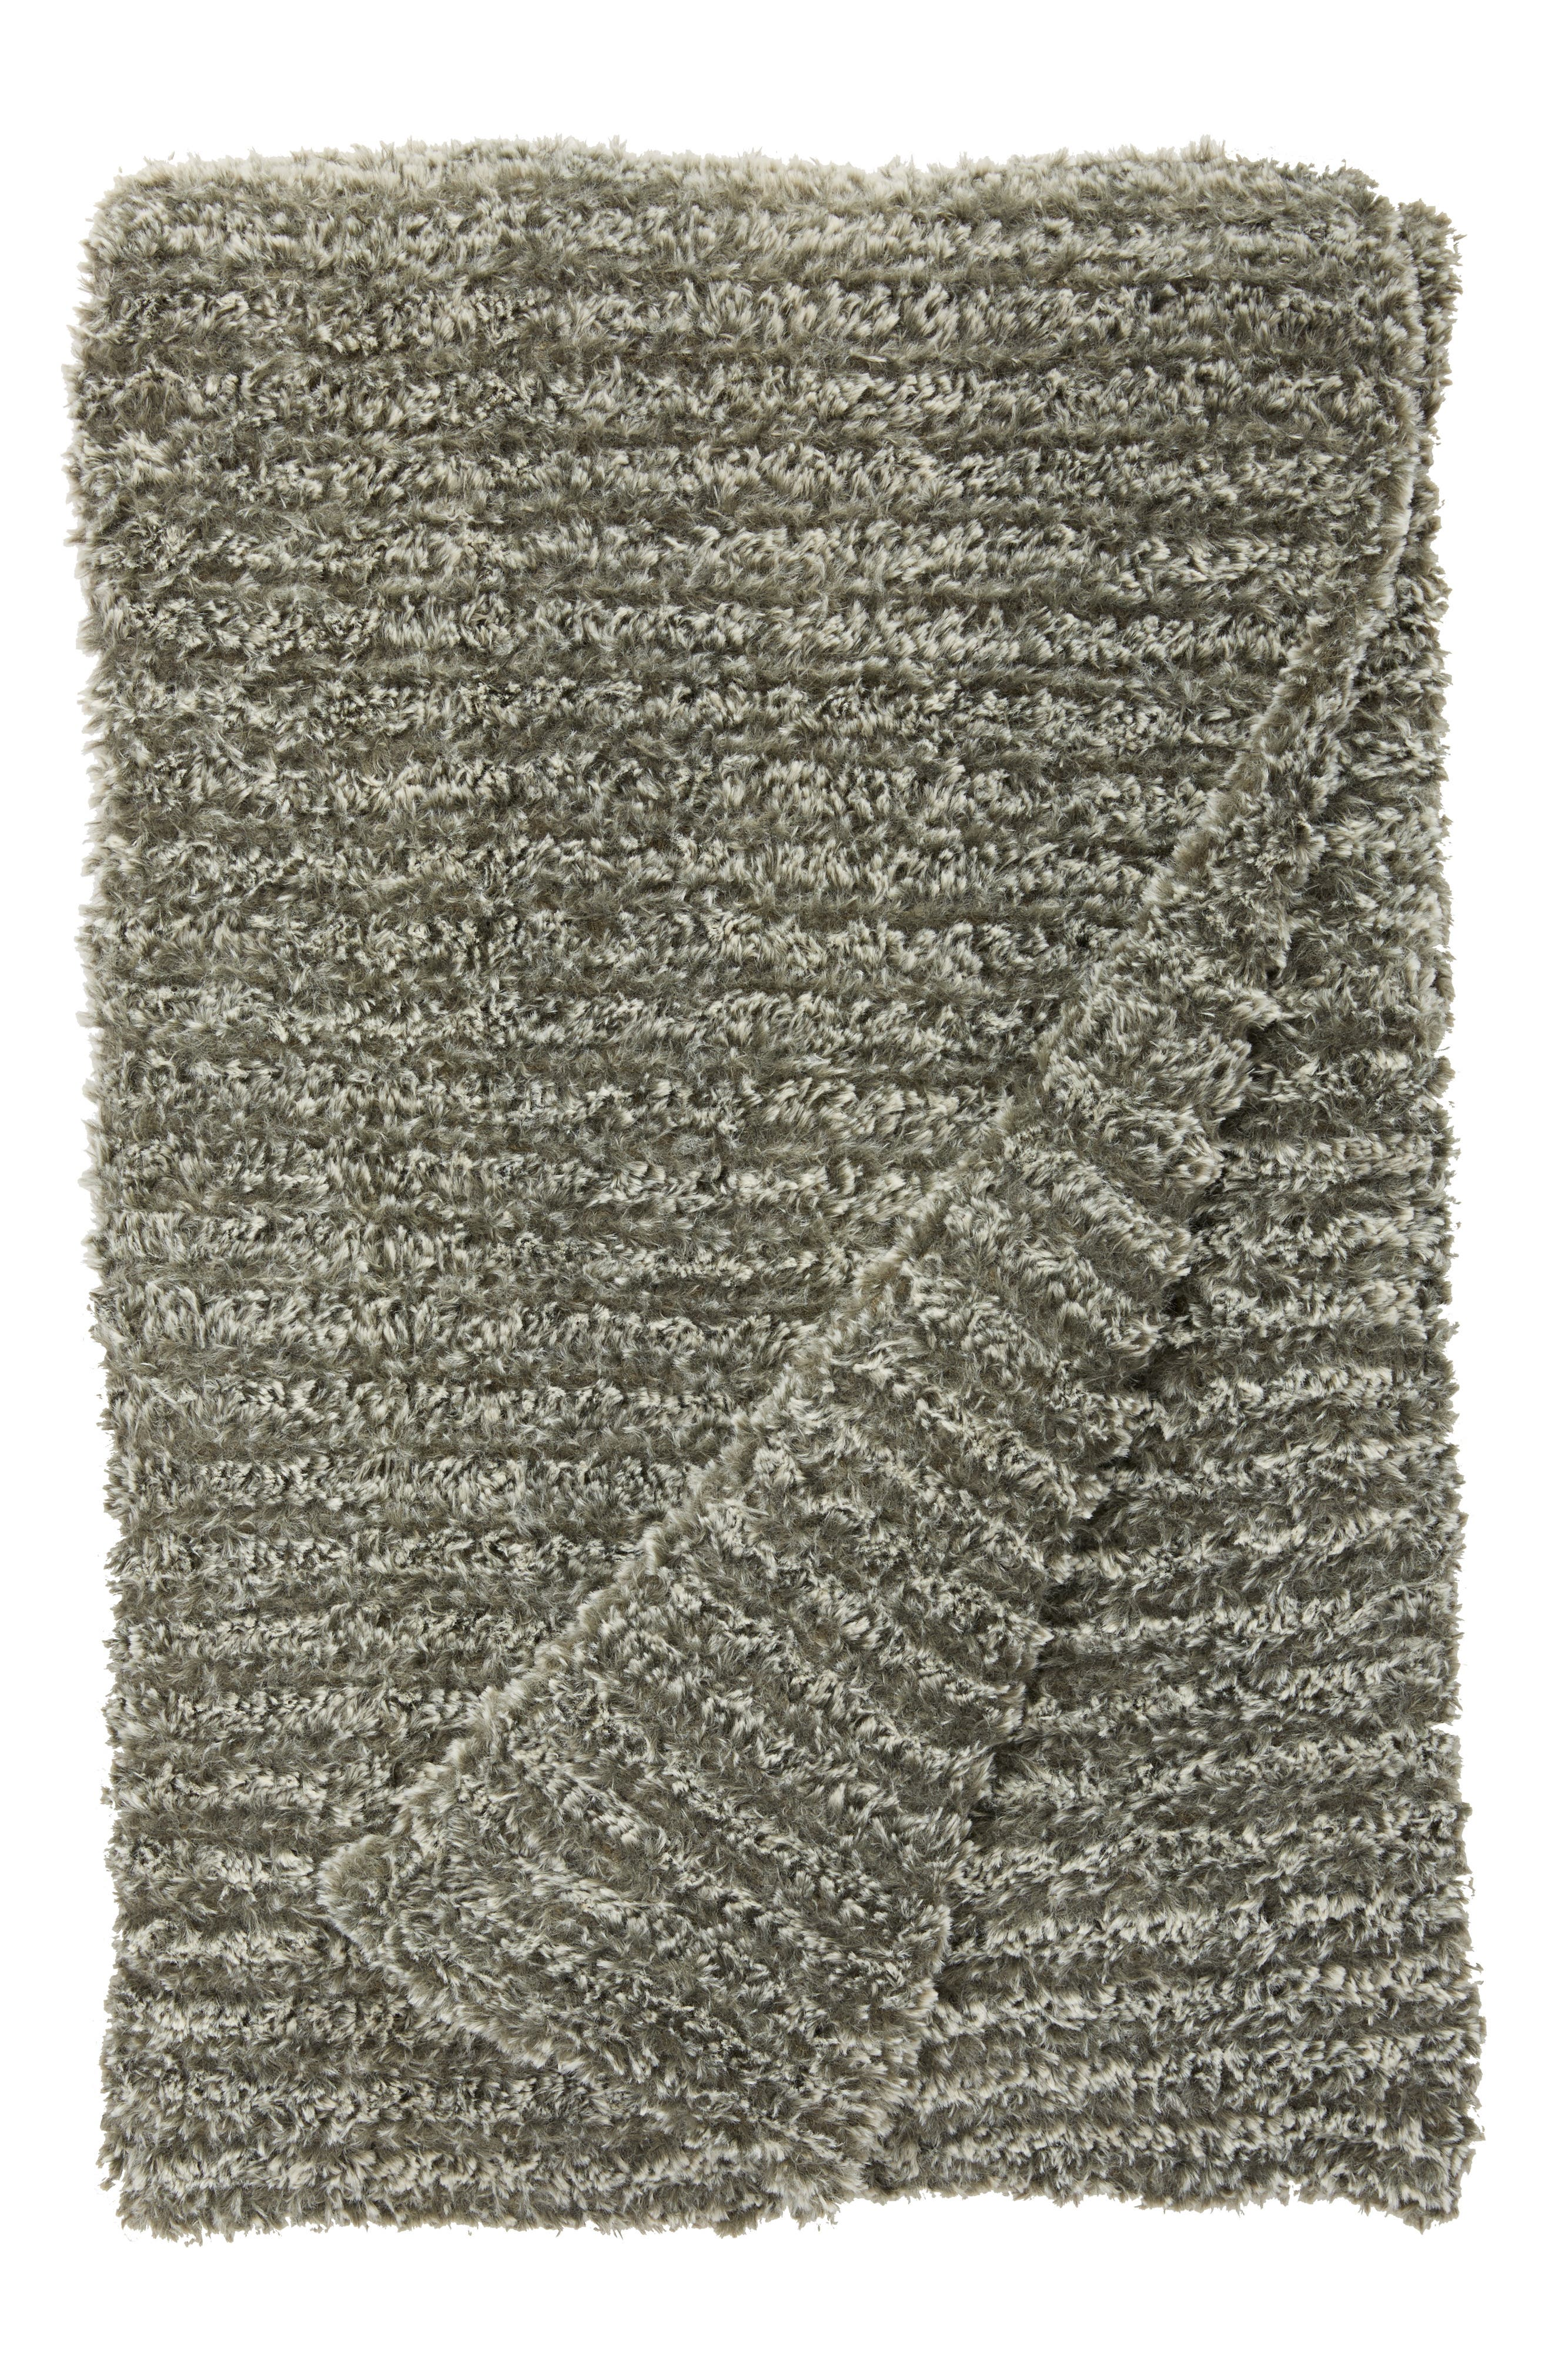 Alternate Image 1 Selected - Giraffe at Home Luxe™ Knit Throw Blanket